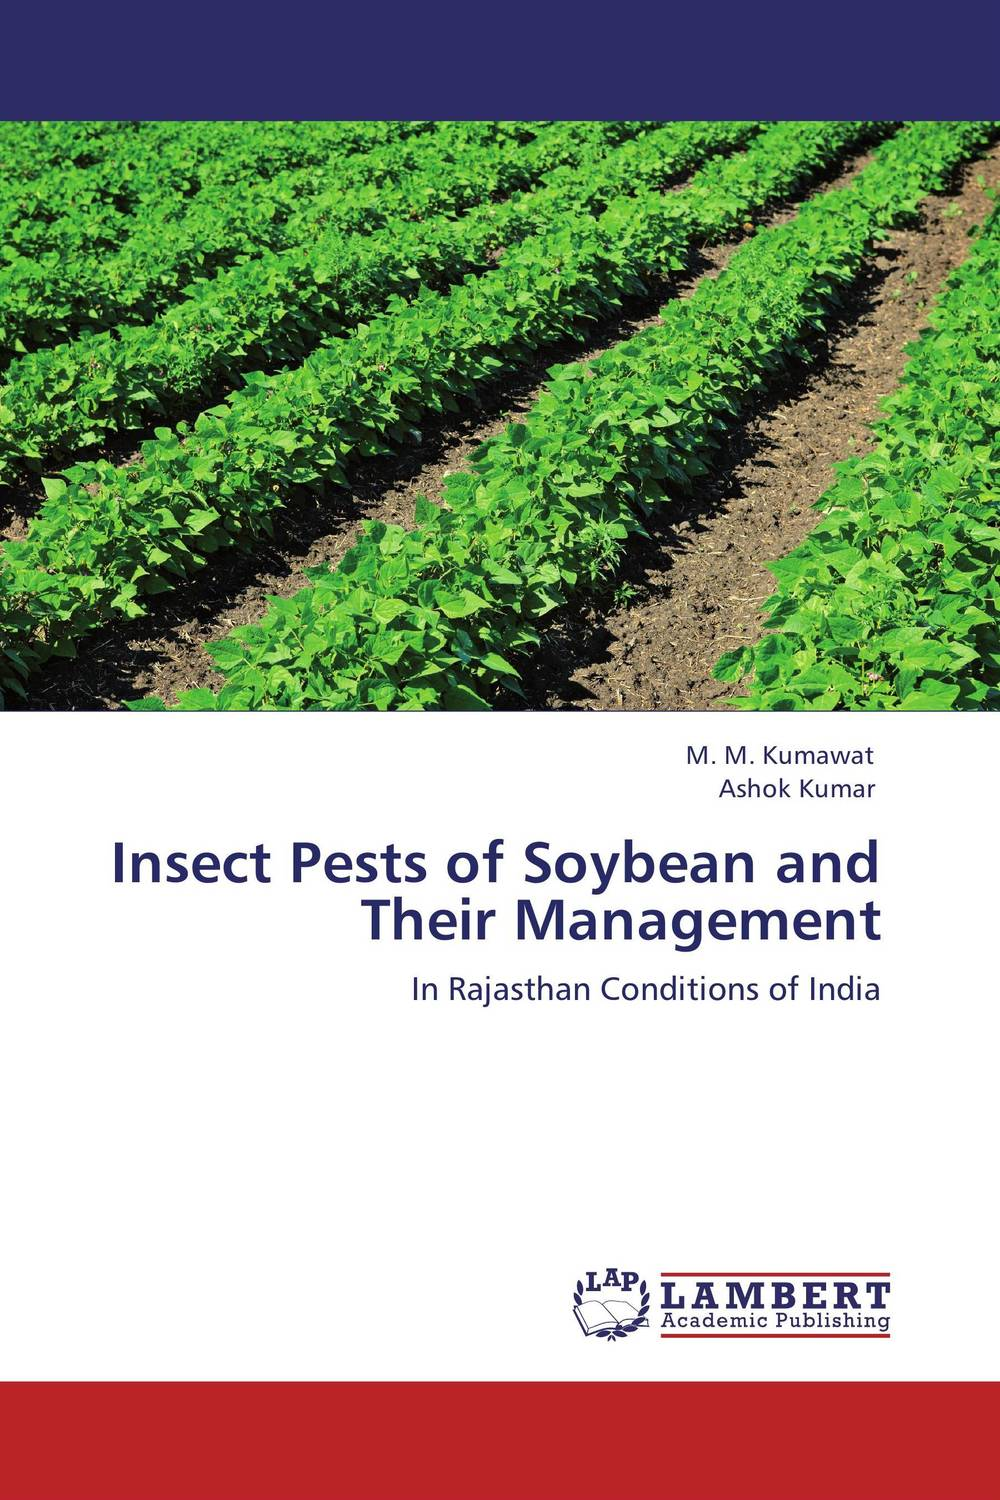 Insect Pests of Soybean and Their Management peter powers and the itchy insect invasion